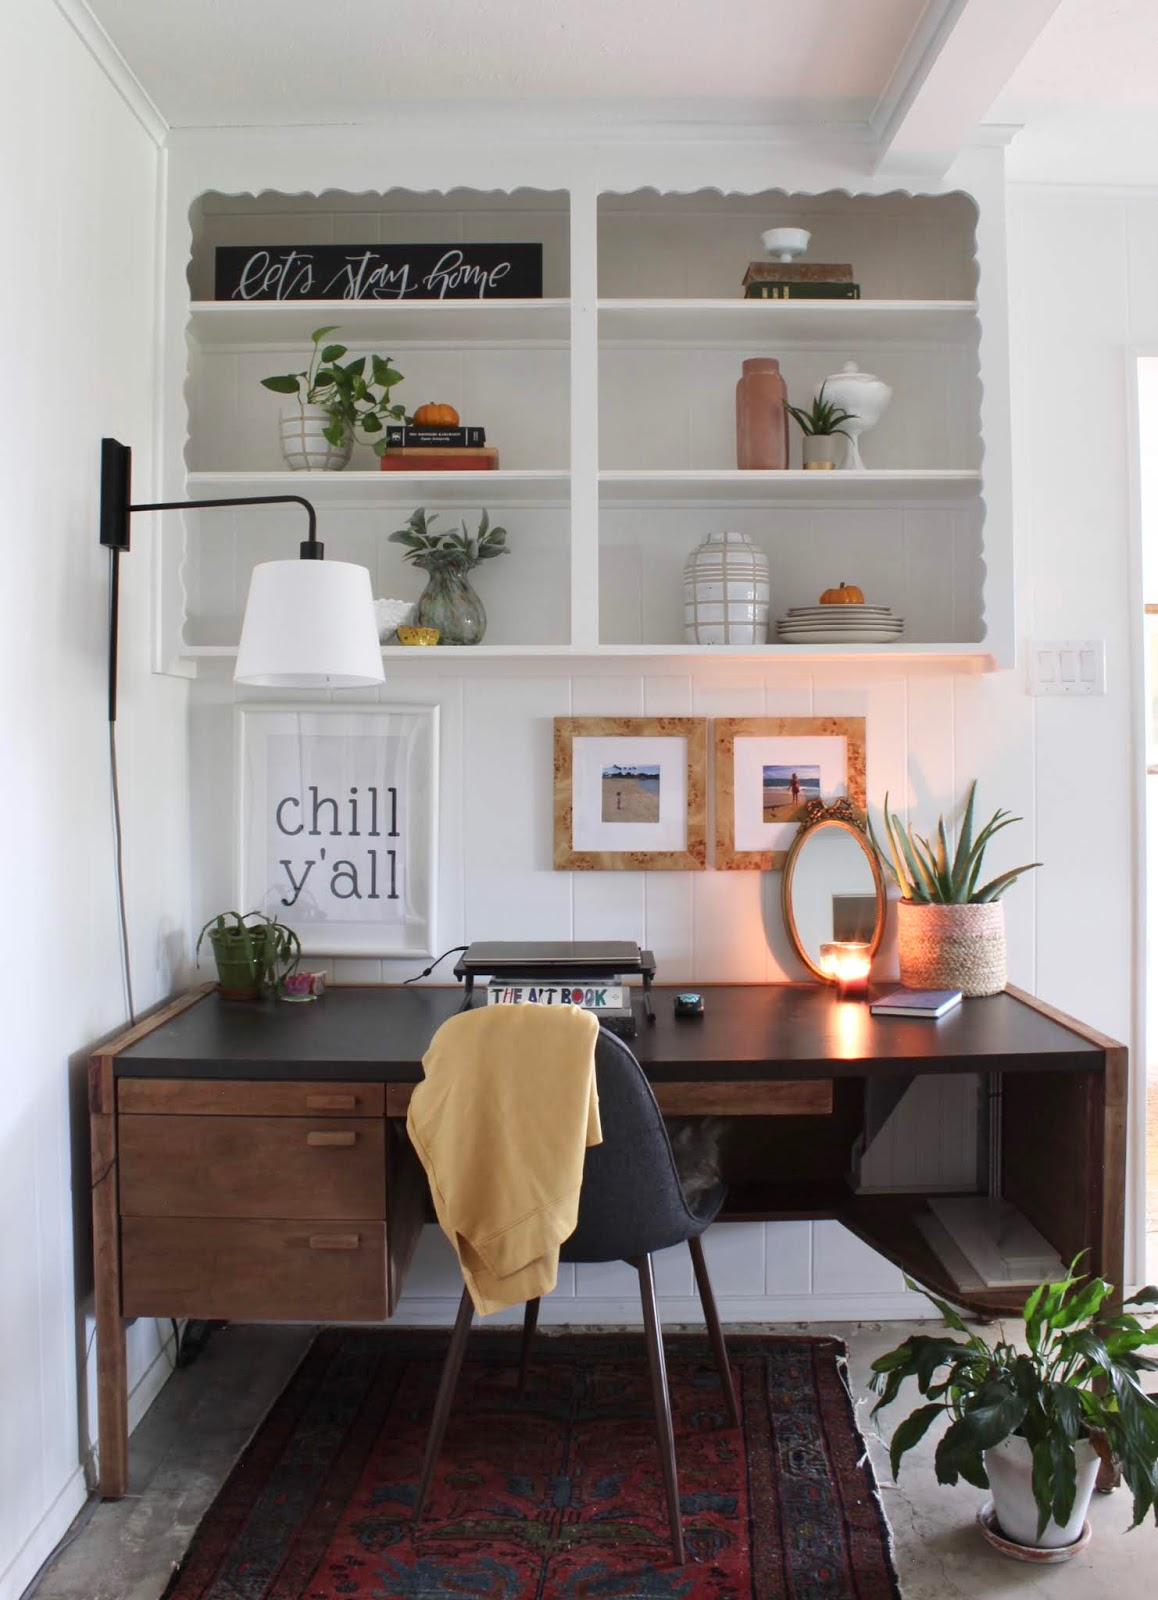 Something different late fall home tour mid century desk work space in living room| House Homemade